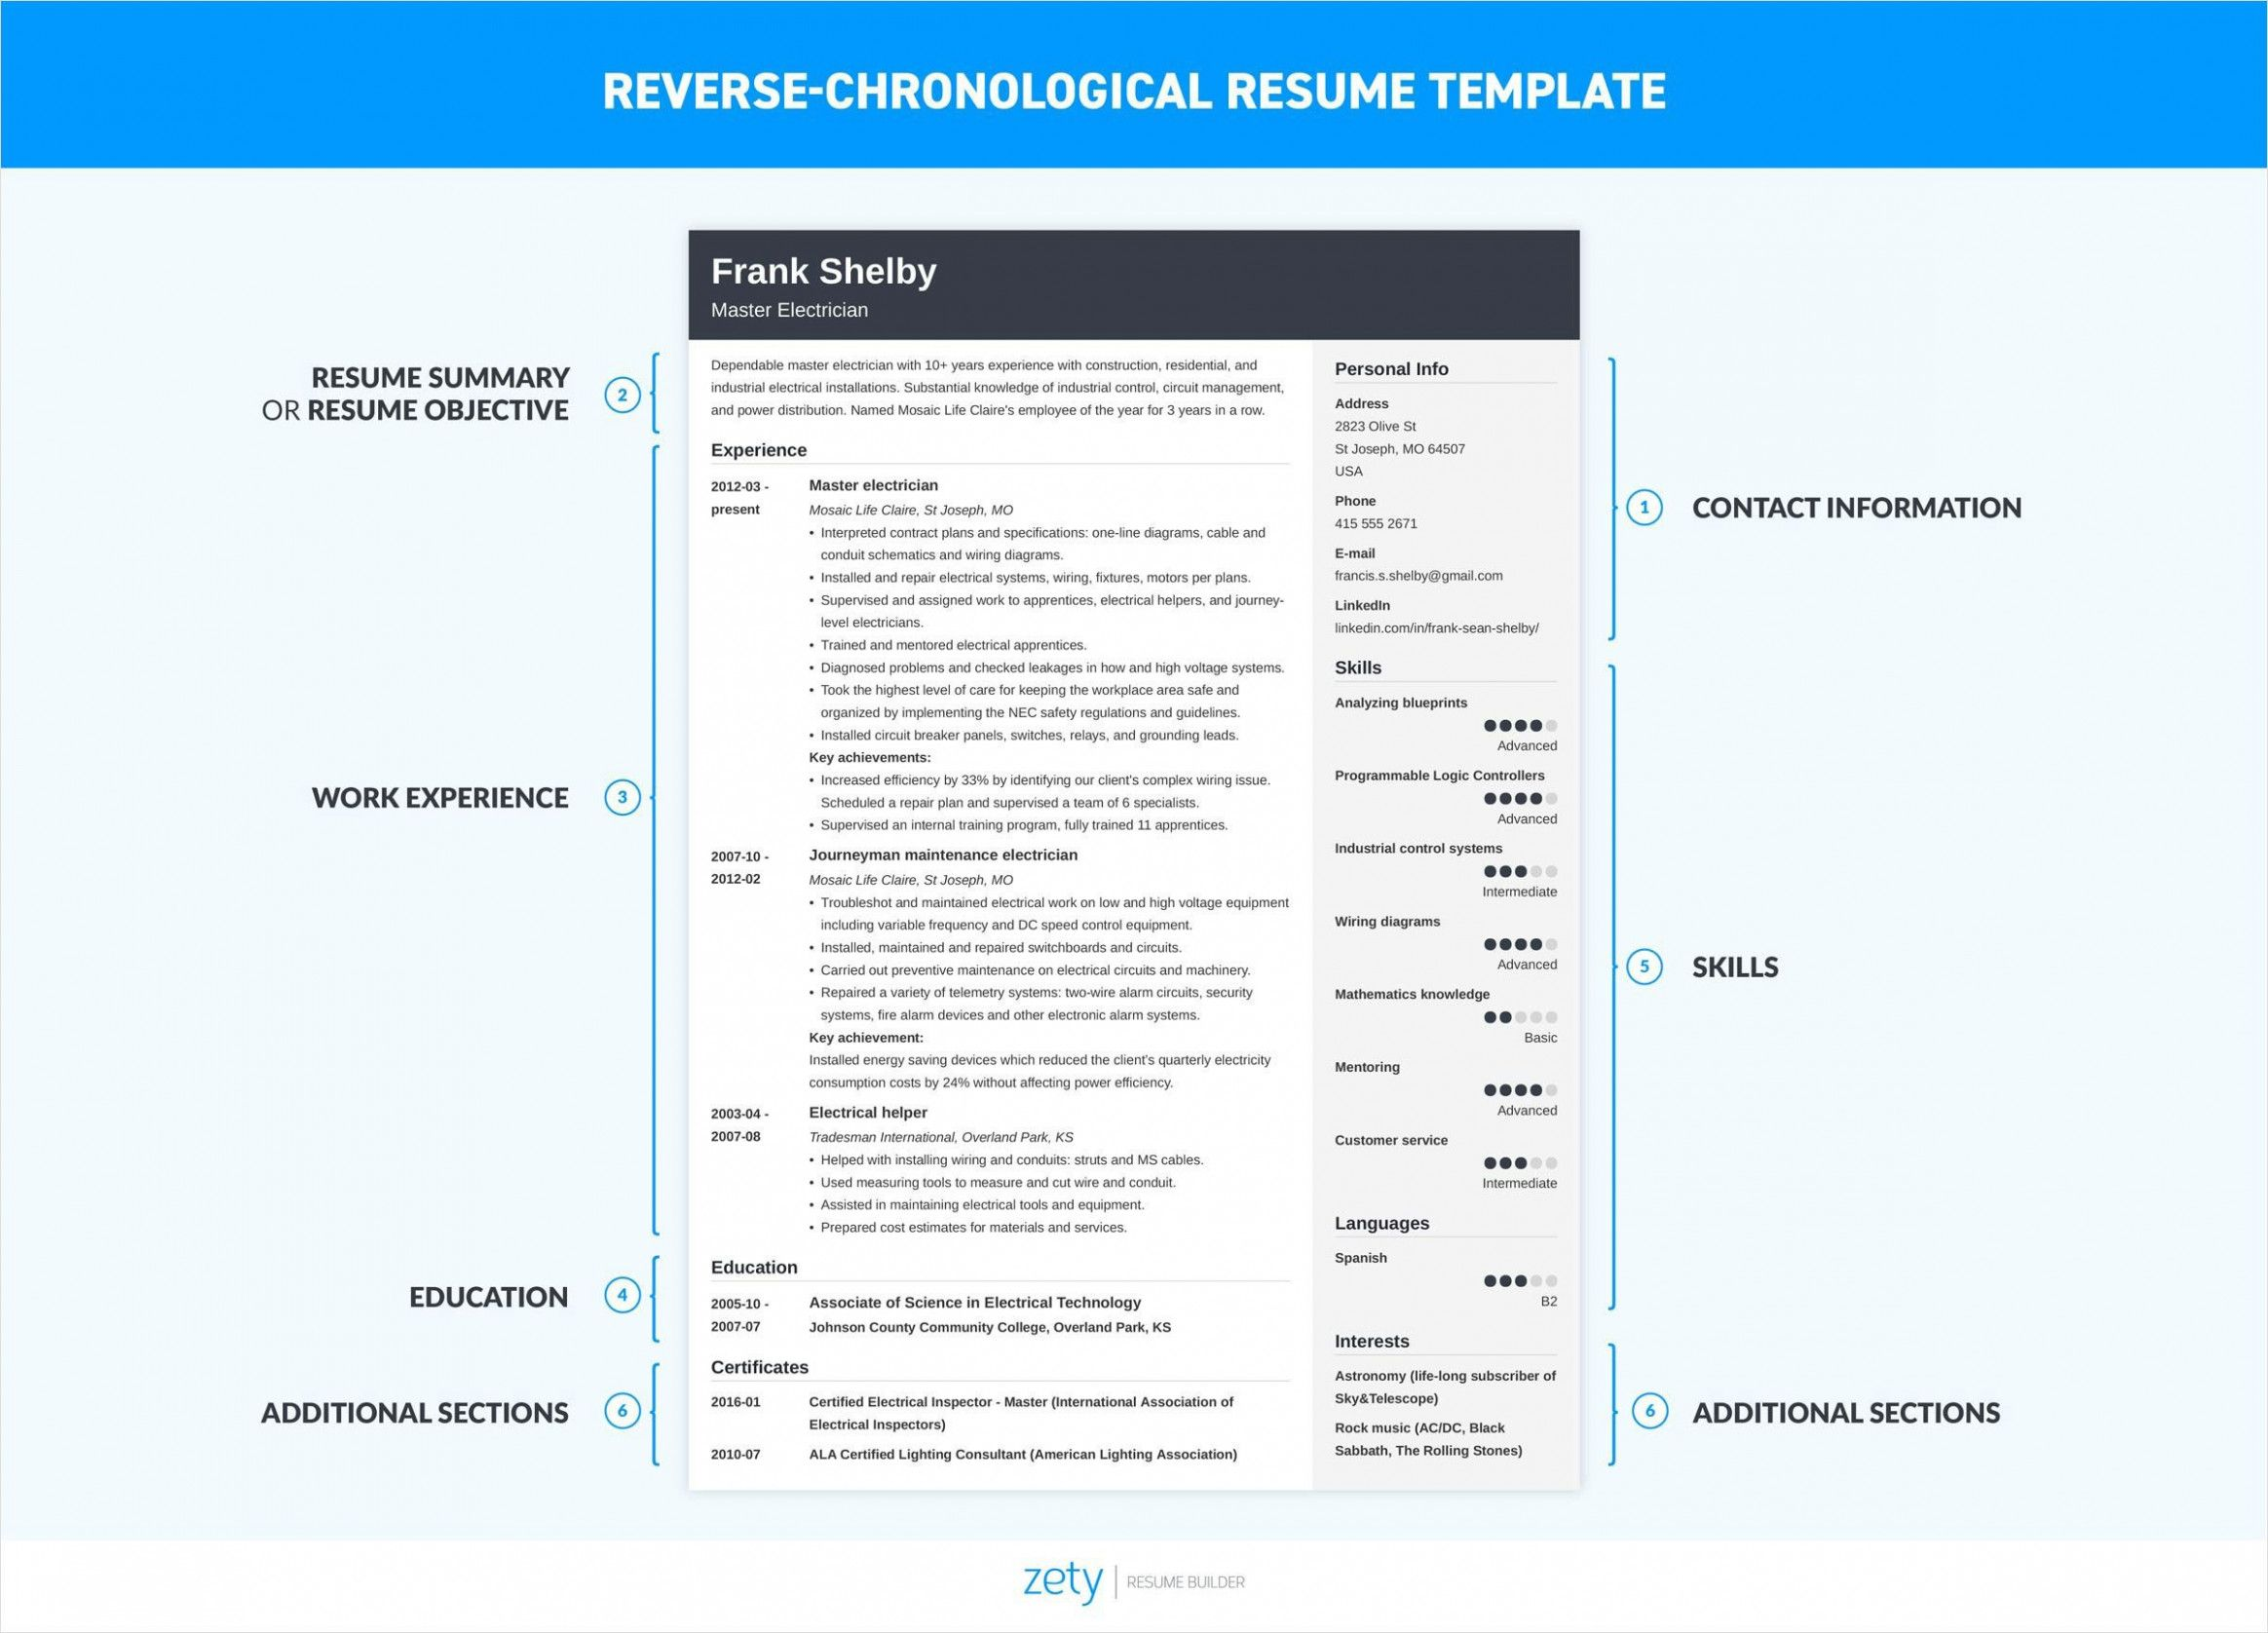 11 Do I Want A Resume For My First Job Interview